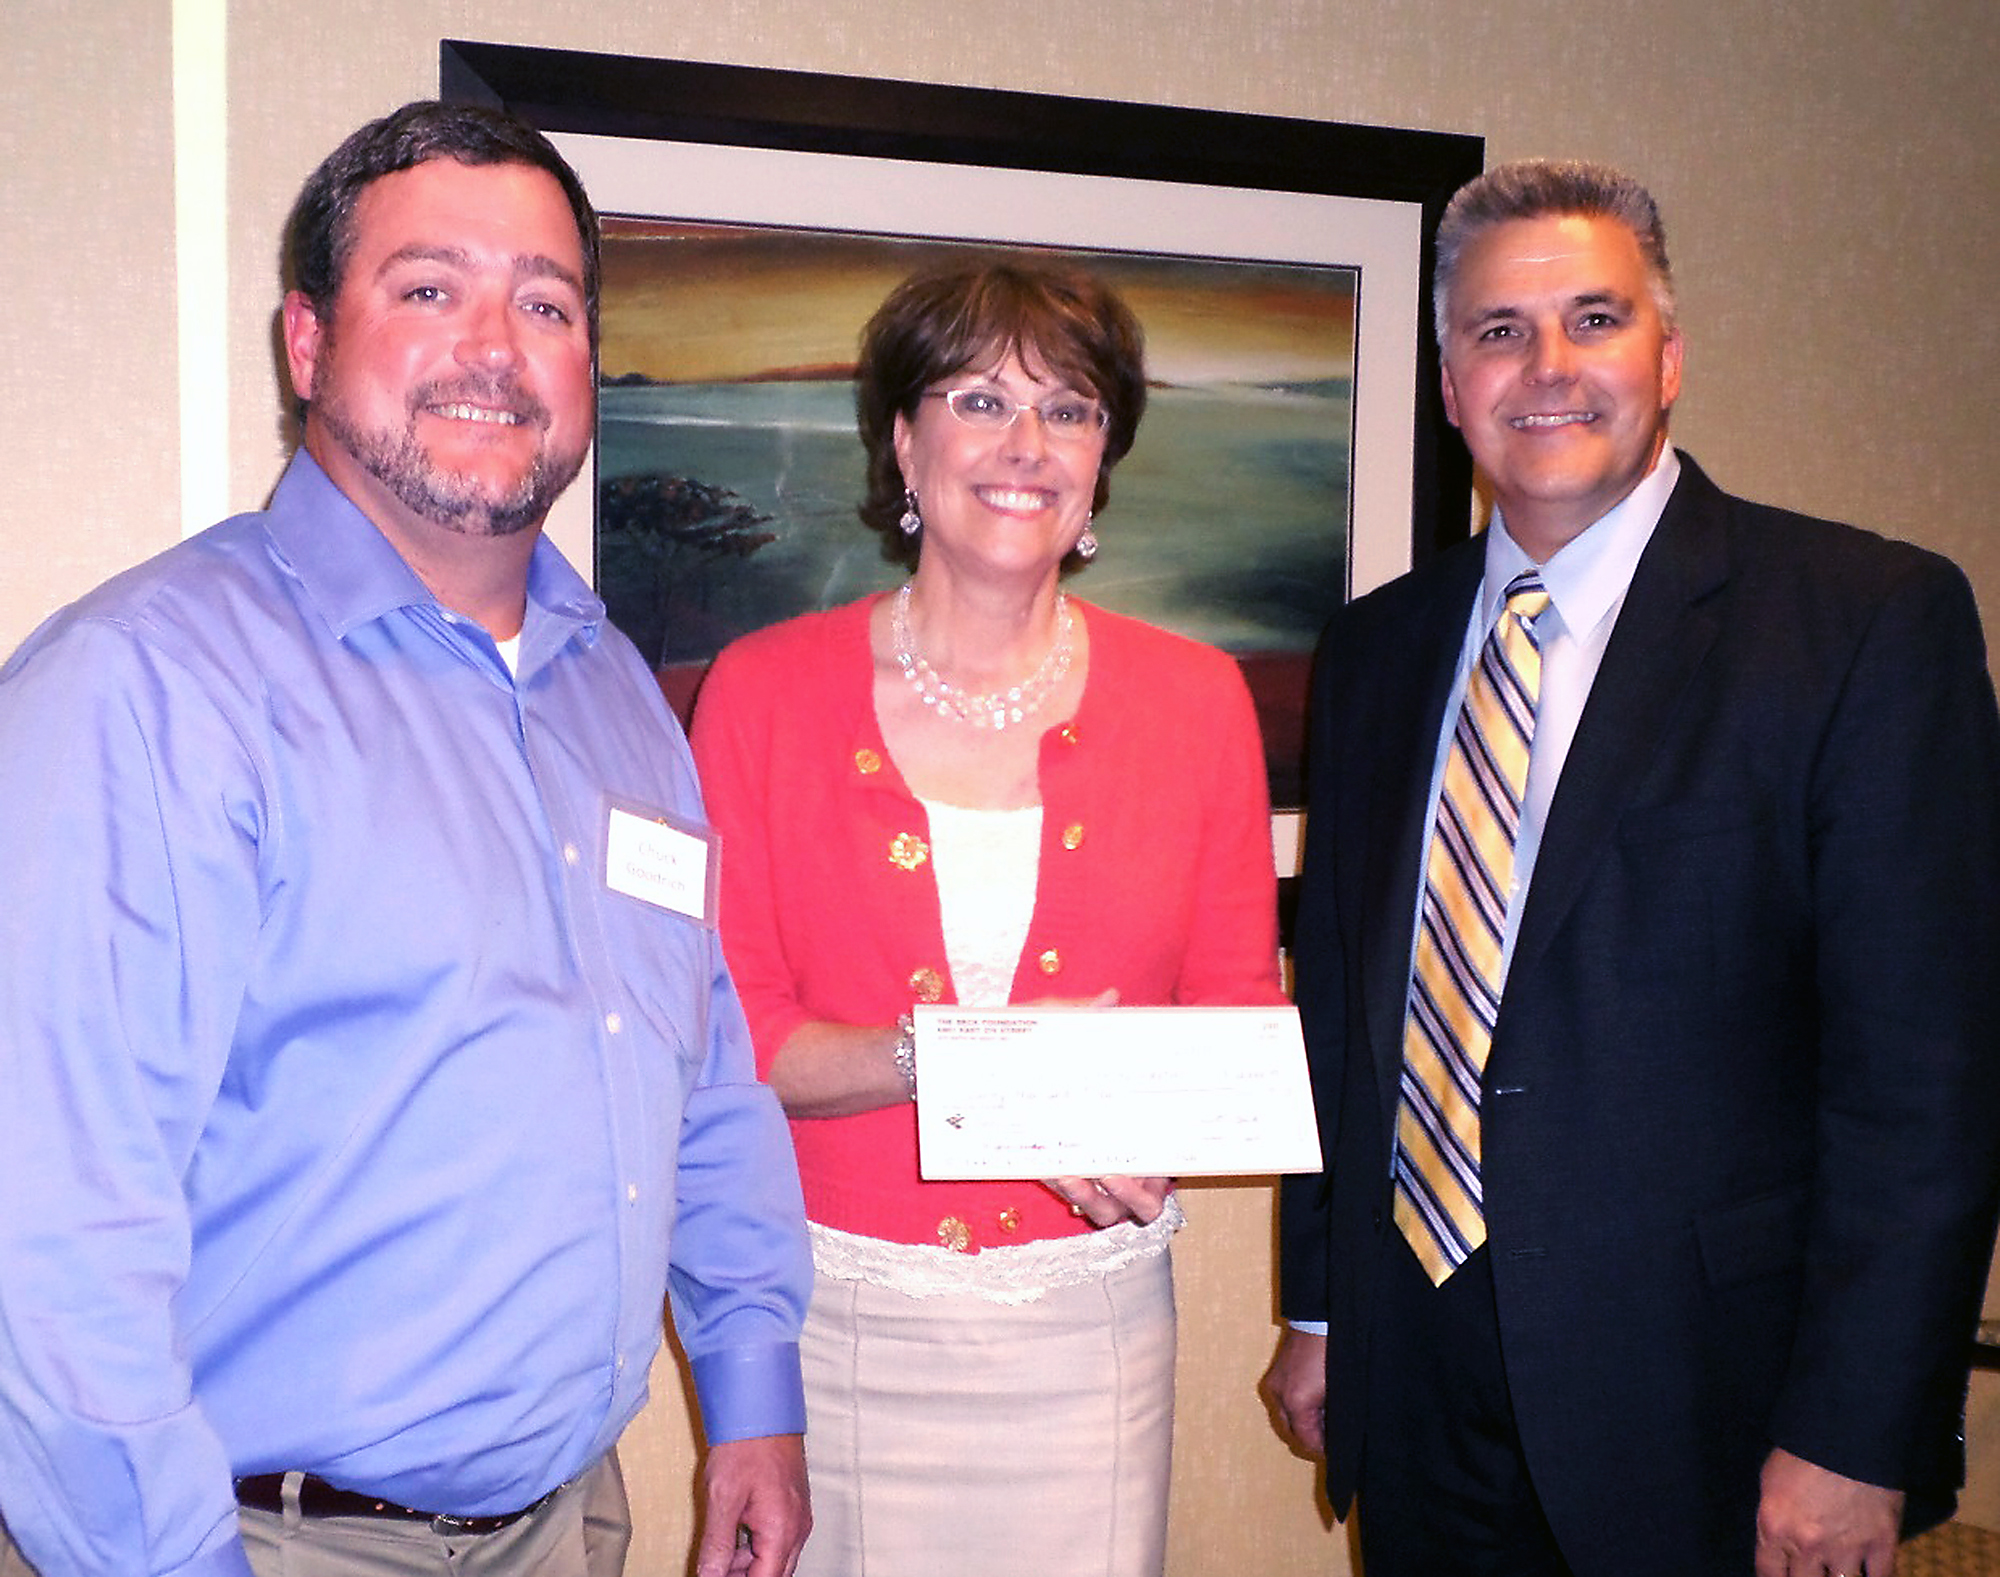 From left: Chuck Goodrich, Riverview Health Foundation board of directors chairman; Trish Oman, Riverview Health Foundation executive director; and Bruce Kettler, Beck's Hybrids director of public relations. The Beck Foundation presented a check for $20,000 to assist with the purchase of a new large-bore MRI. (Submitted photo)